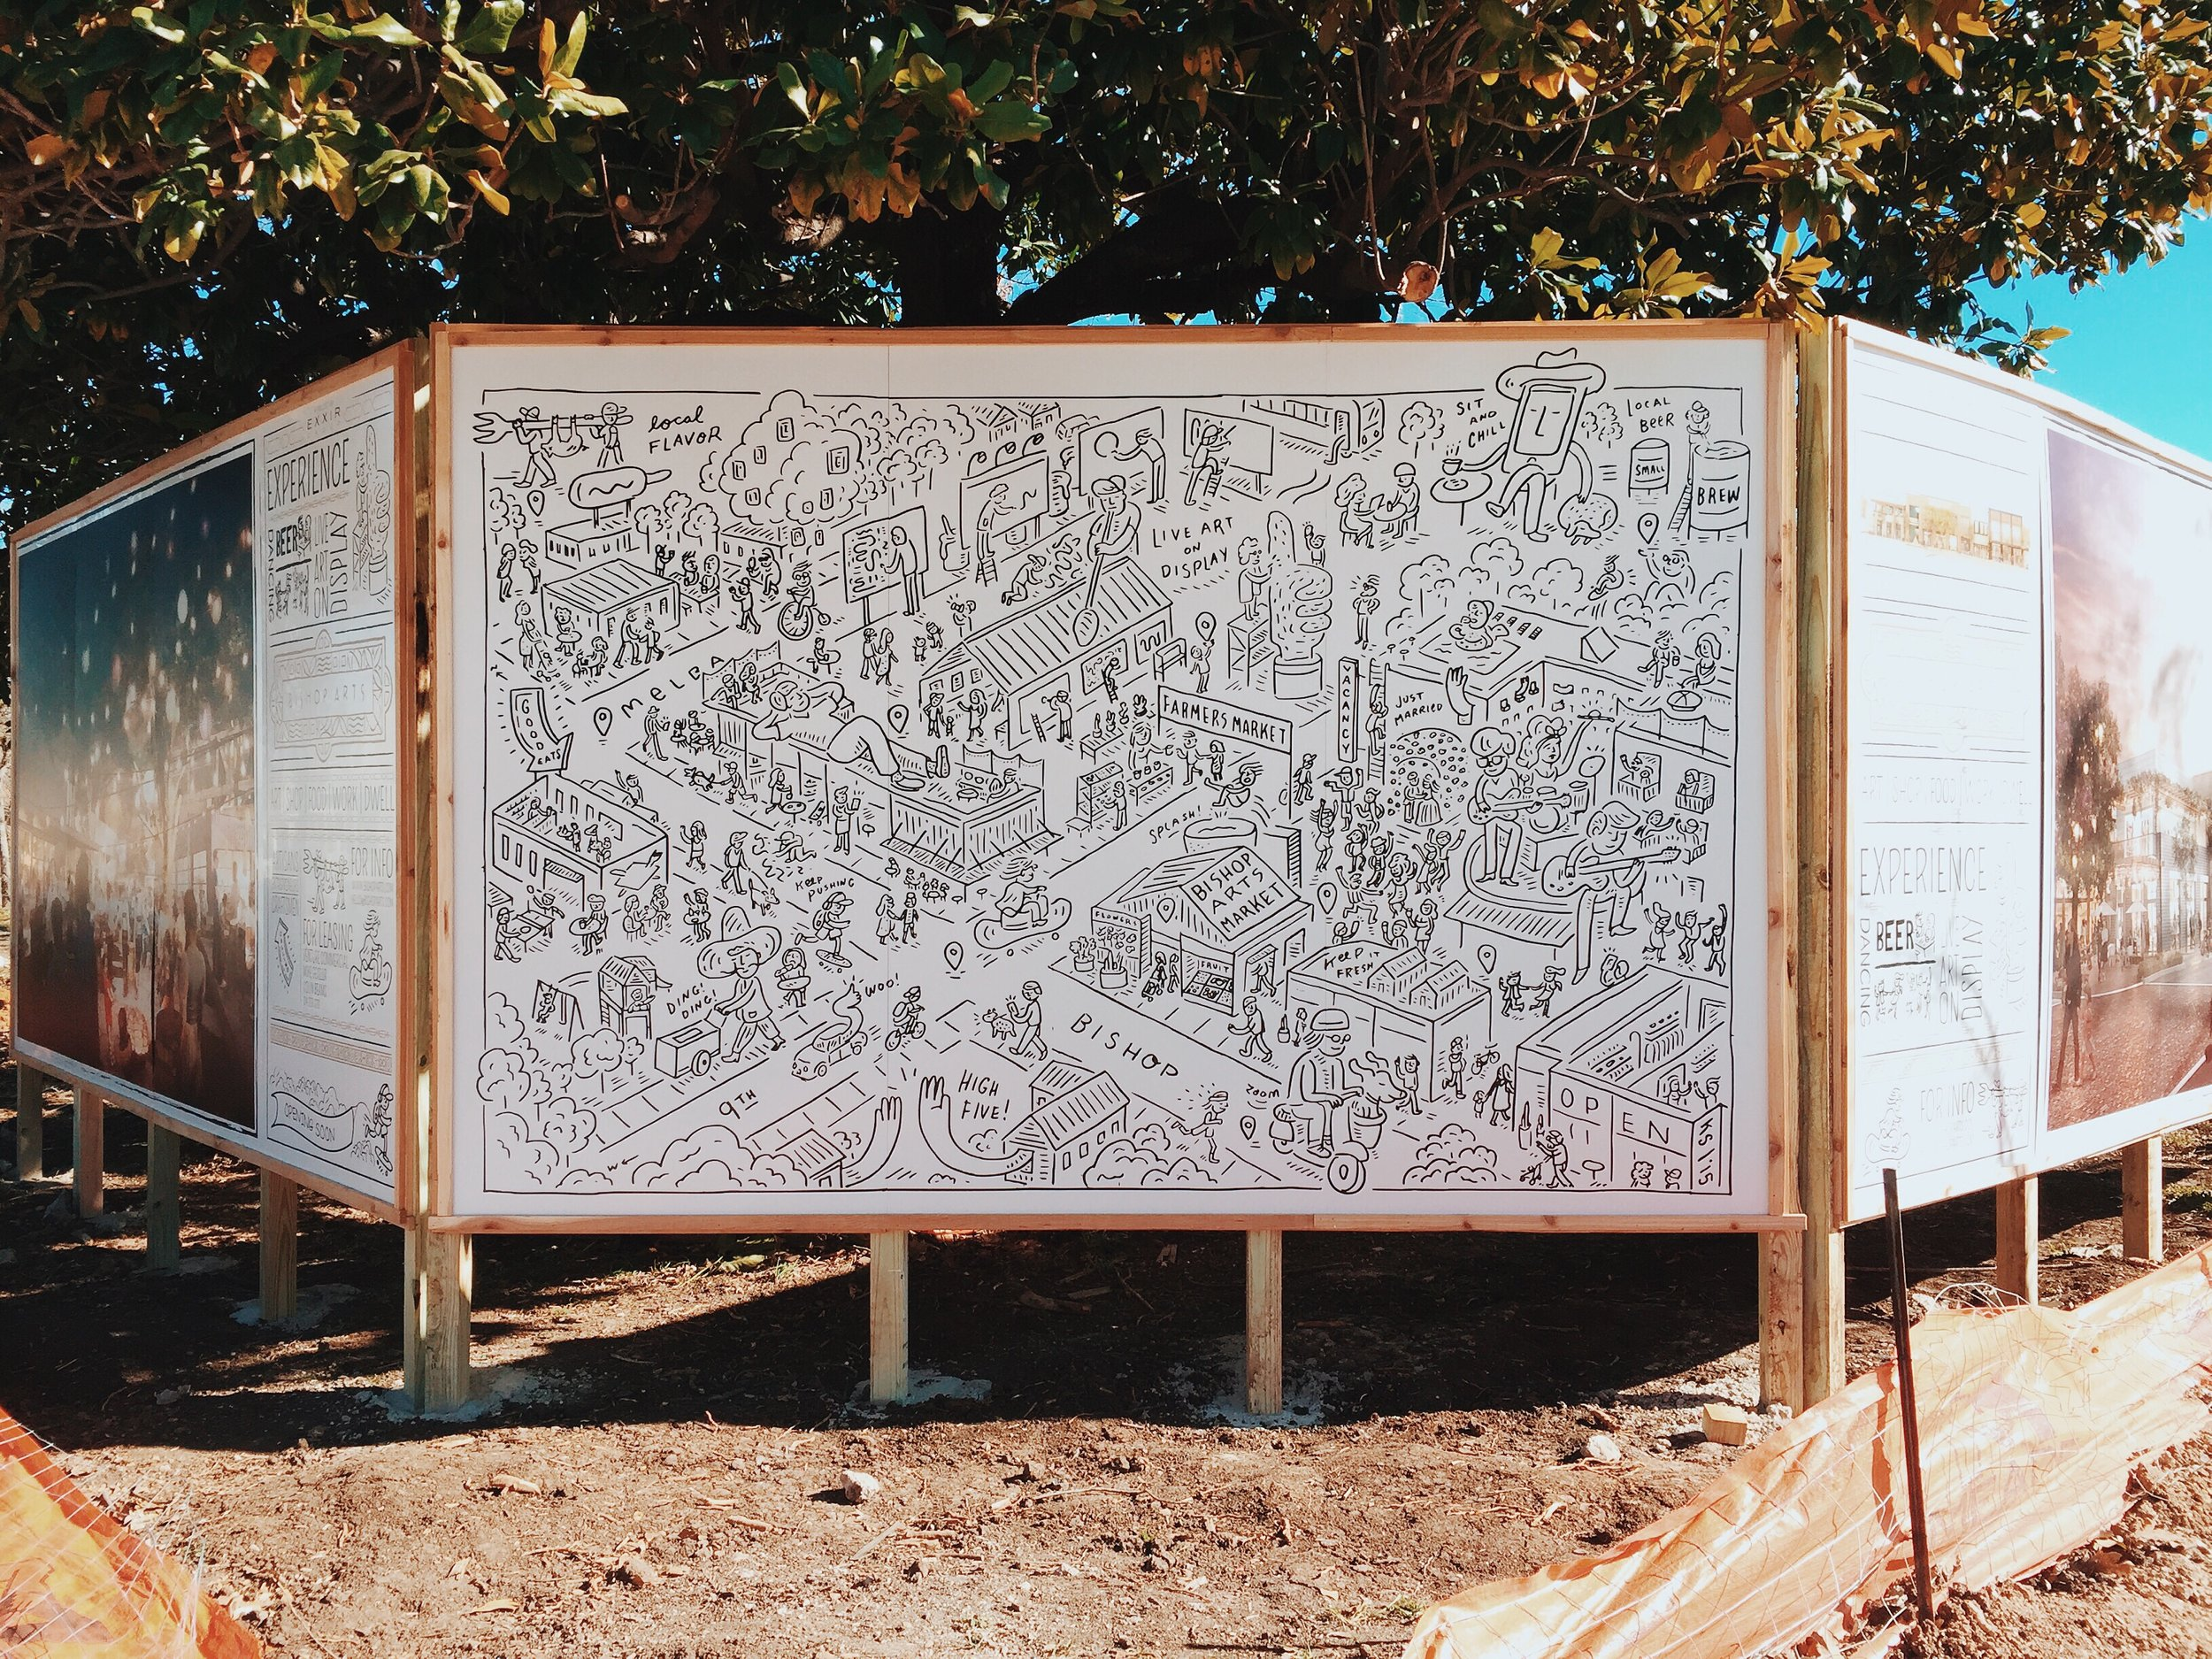 Bishop Arts Illustrated Map by Kyle Steed